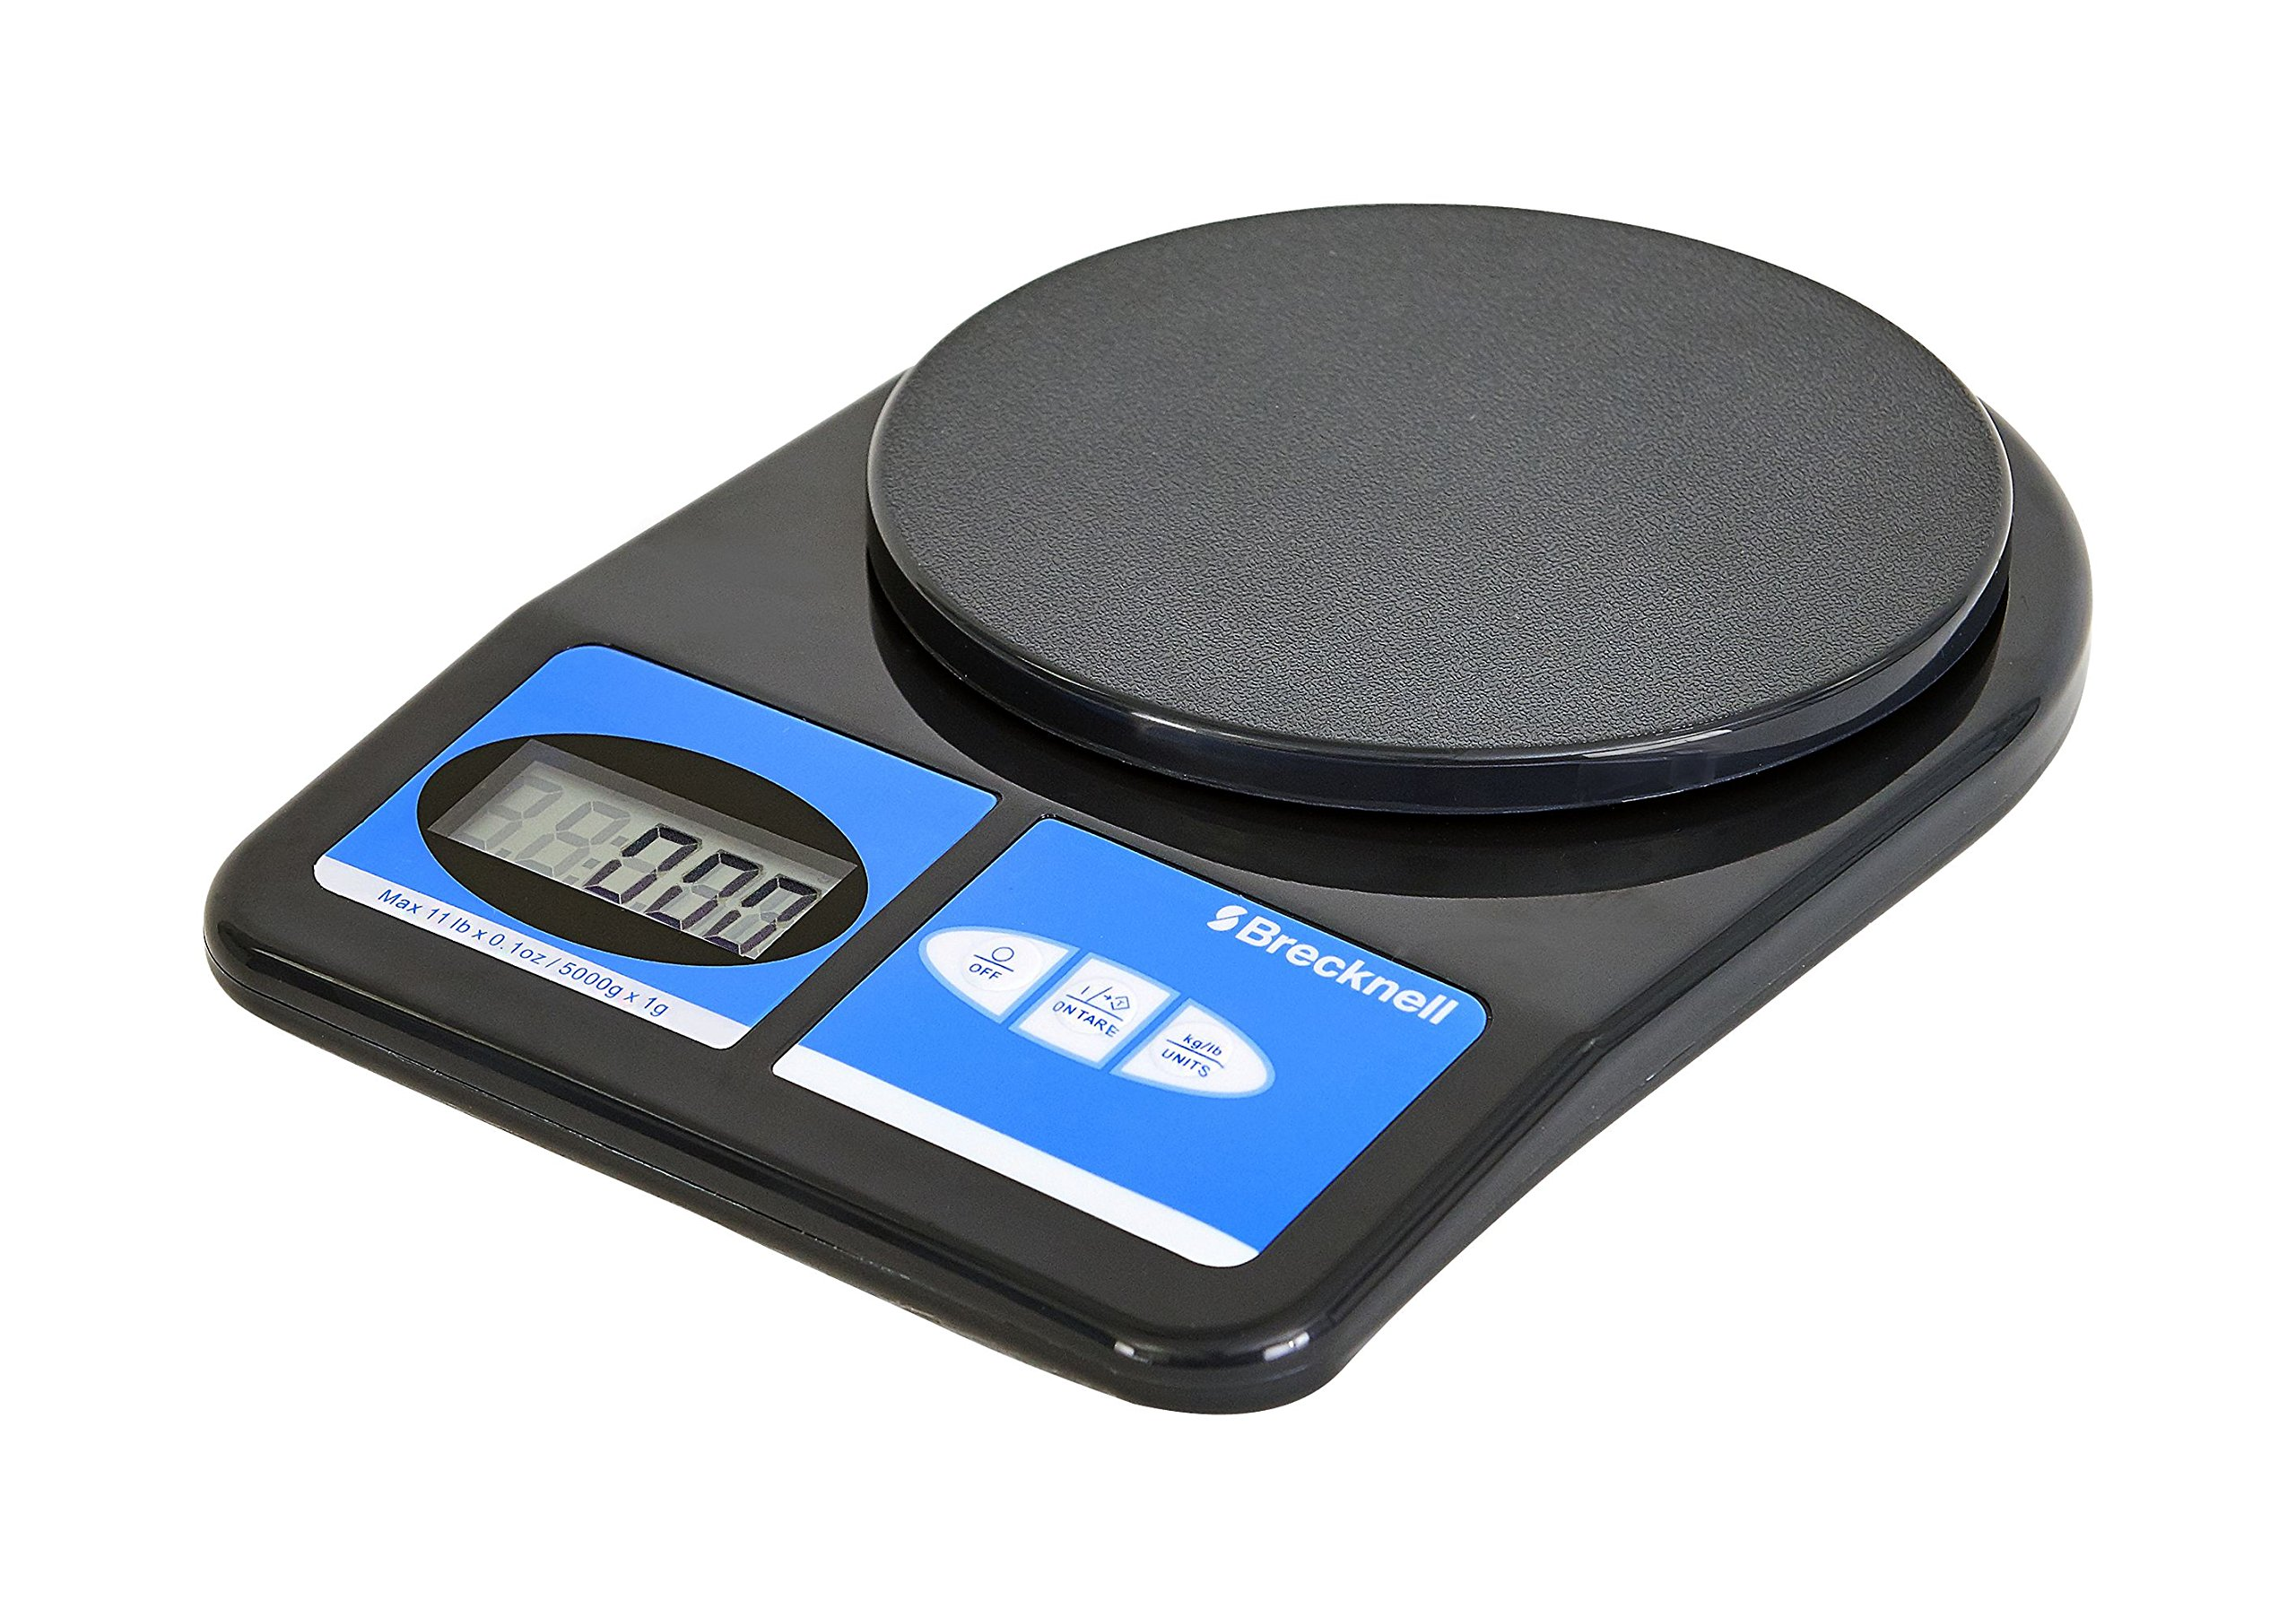 Brecknell 311 Electronic Office Scale, 11 lb Capacity, LCD Display, Battery Operated by Brecknell